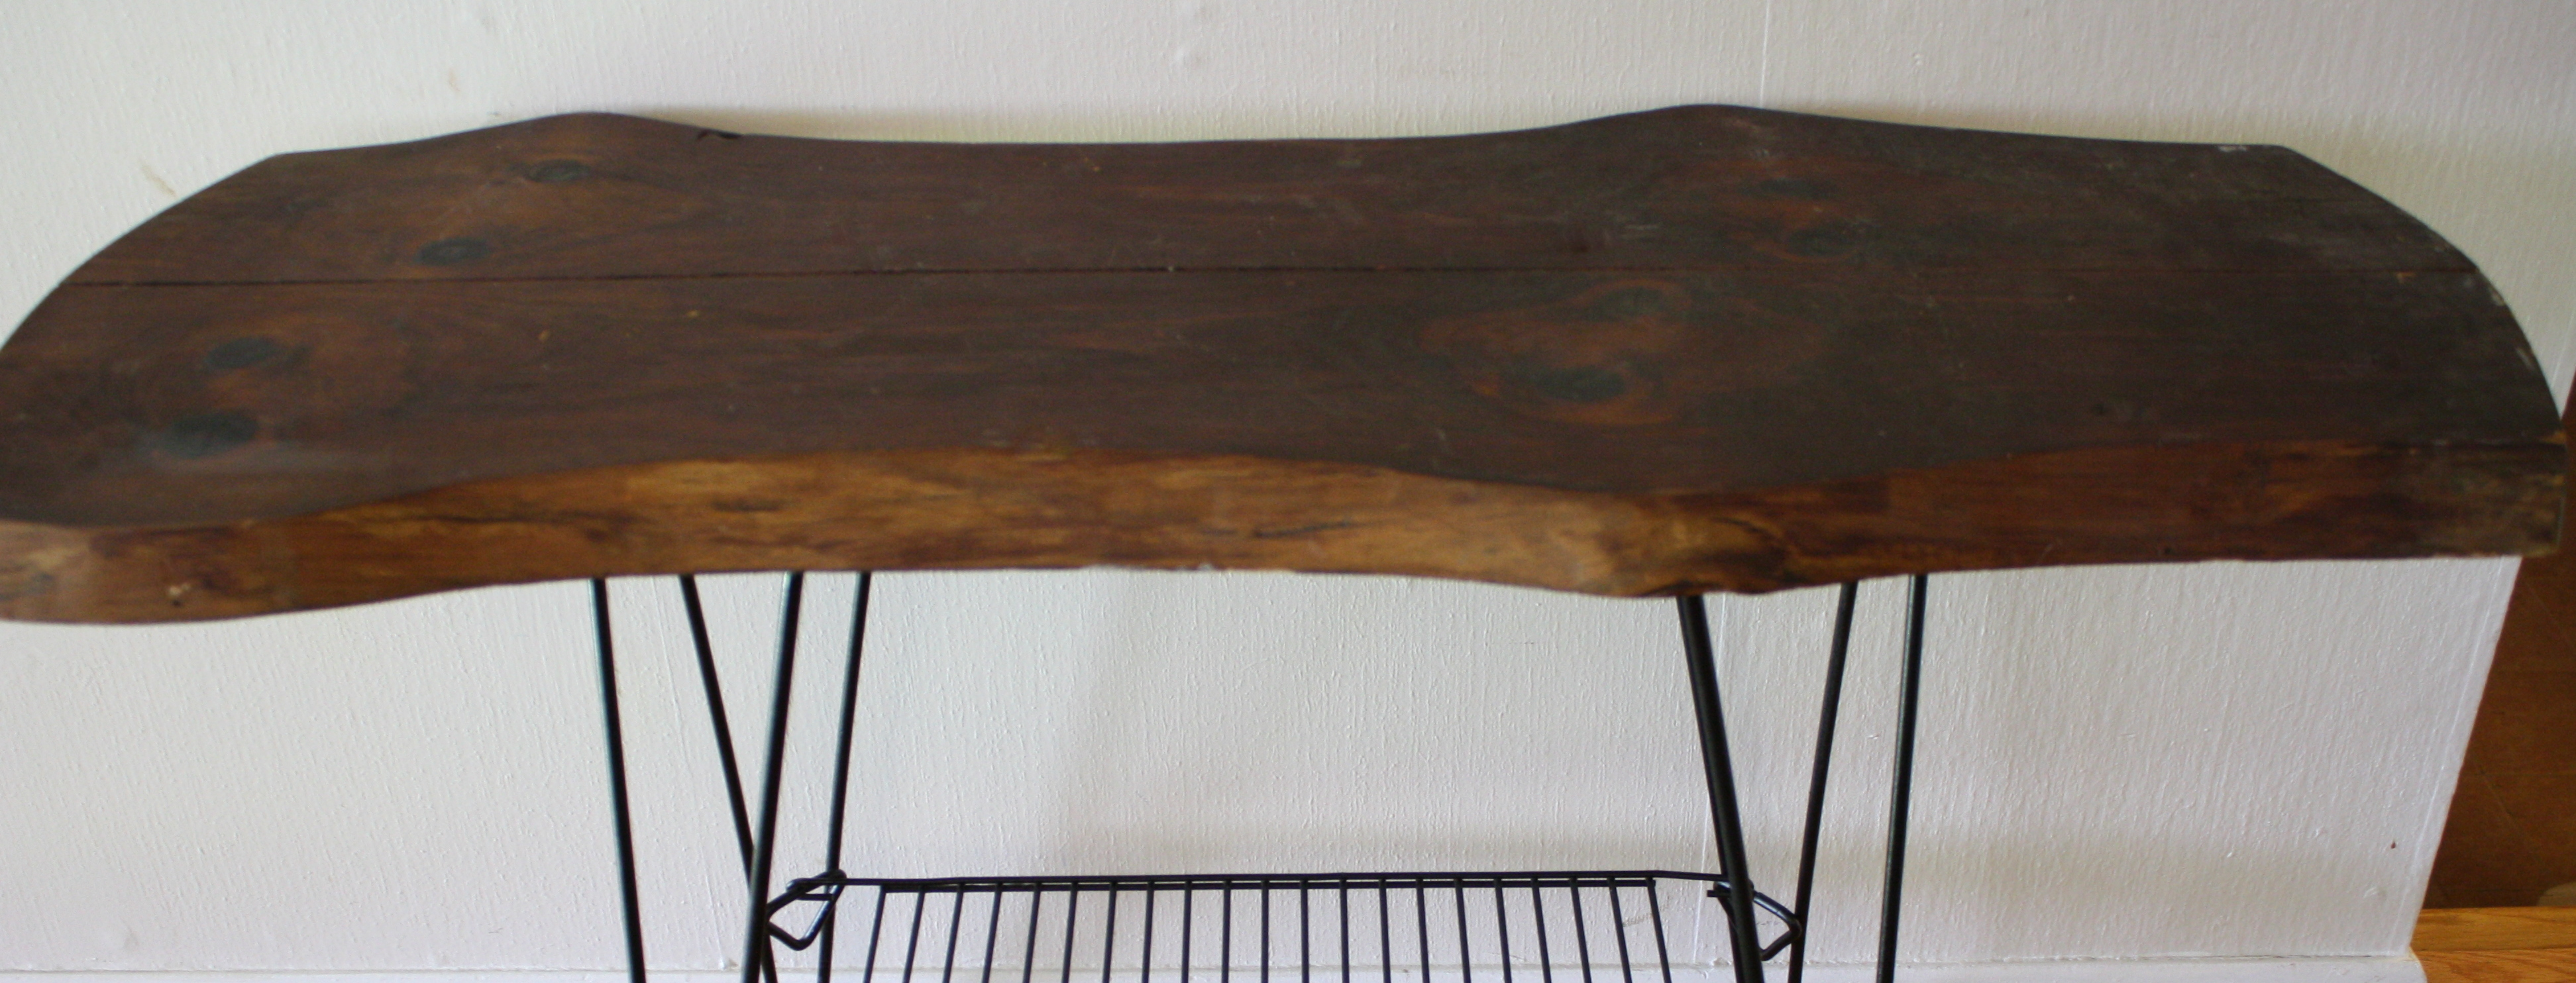 Mid Century Modern Hairpin Leg Console Table With